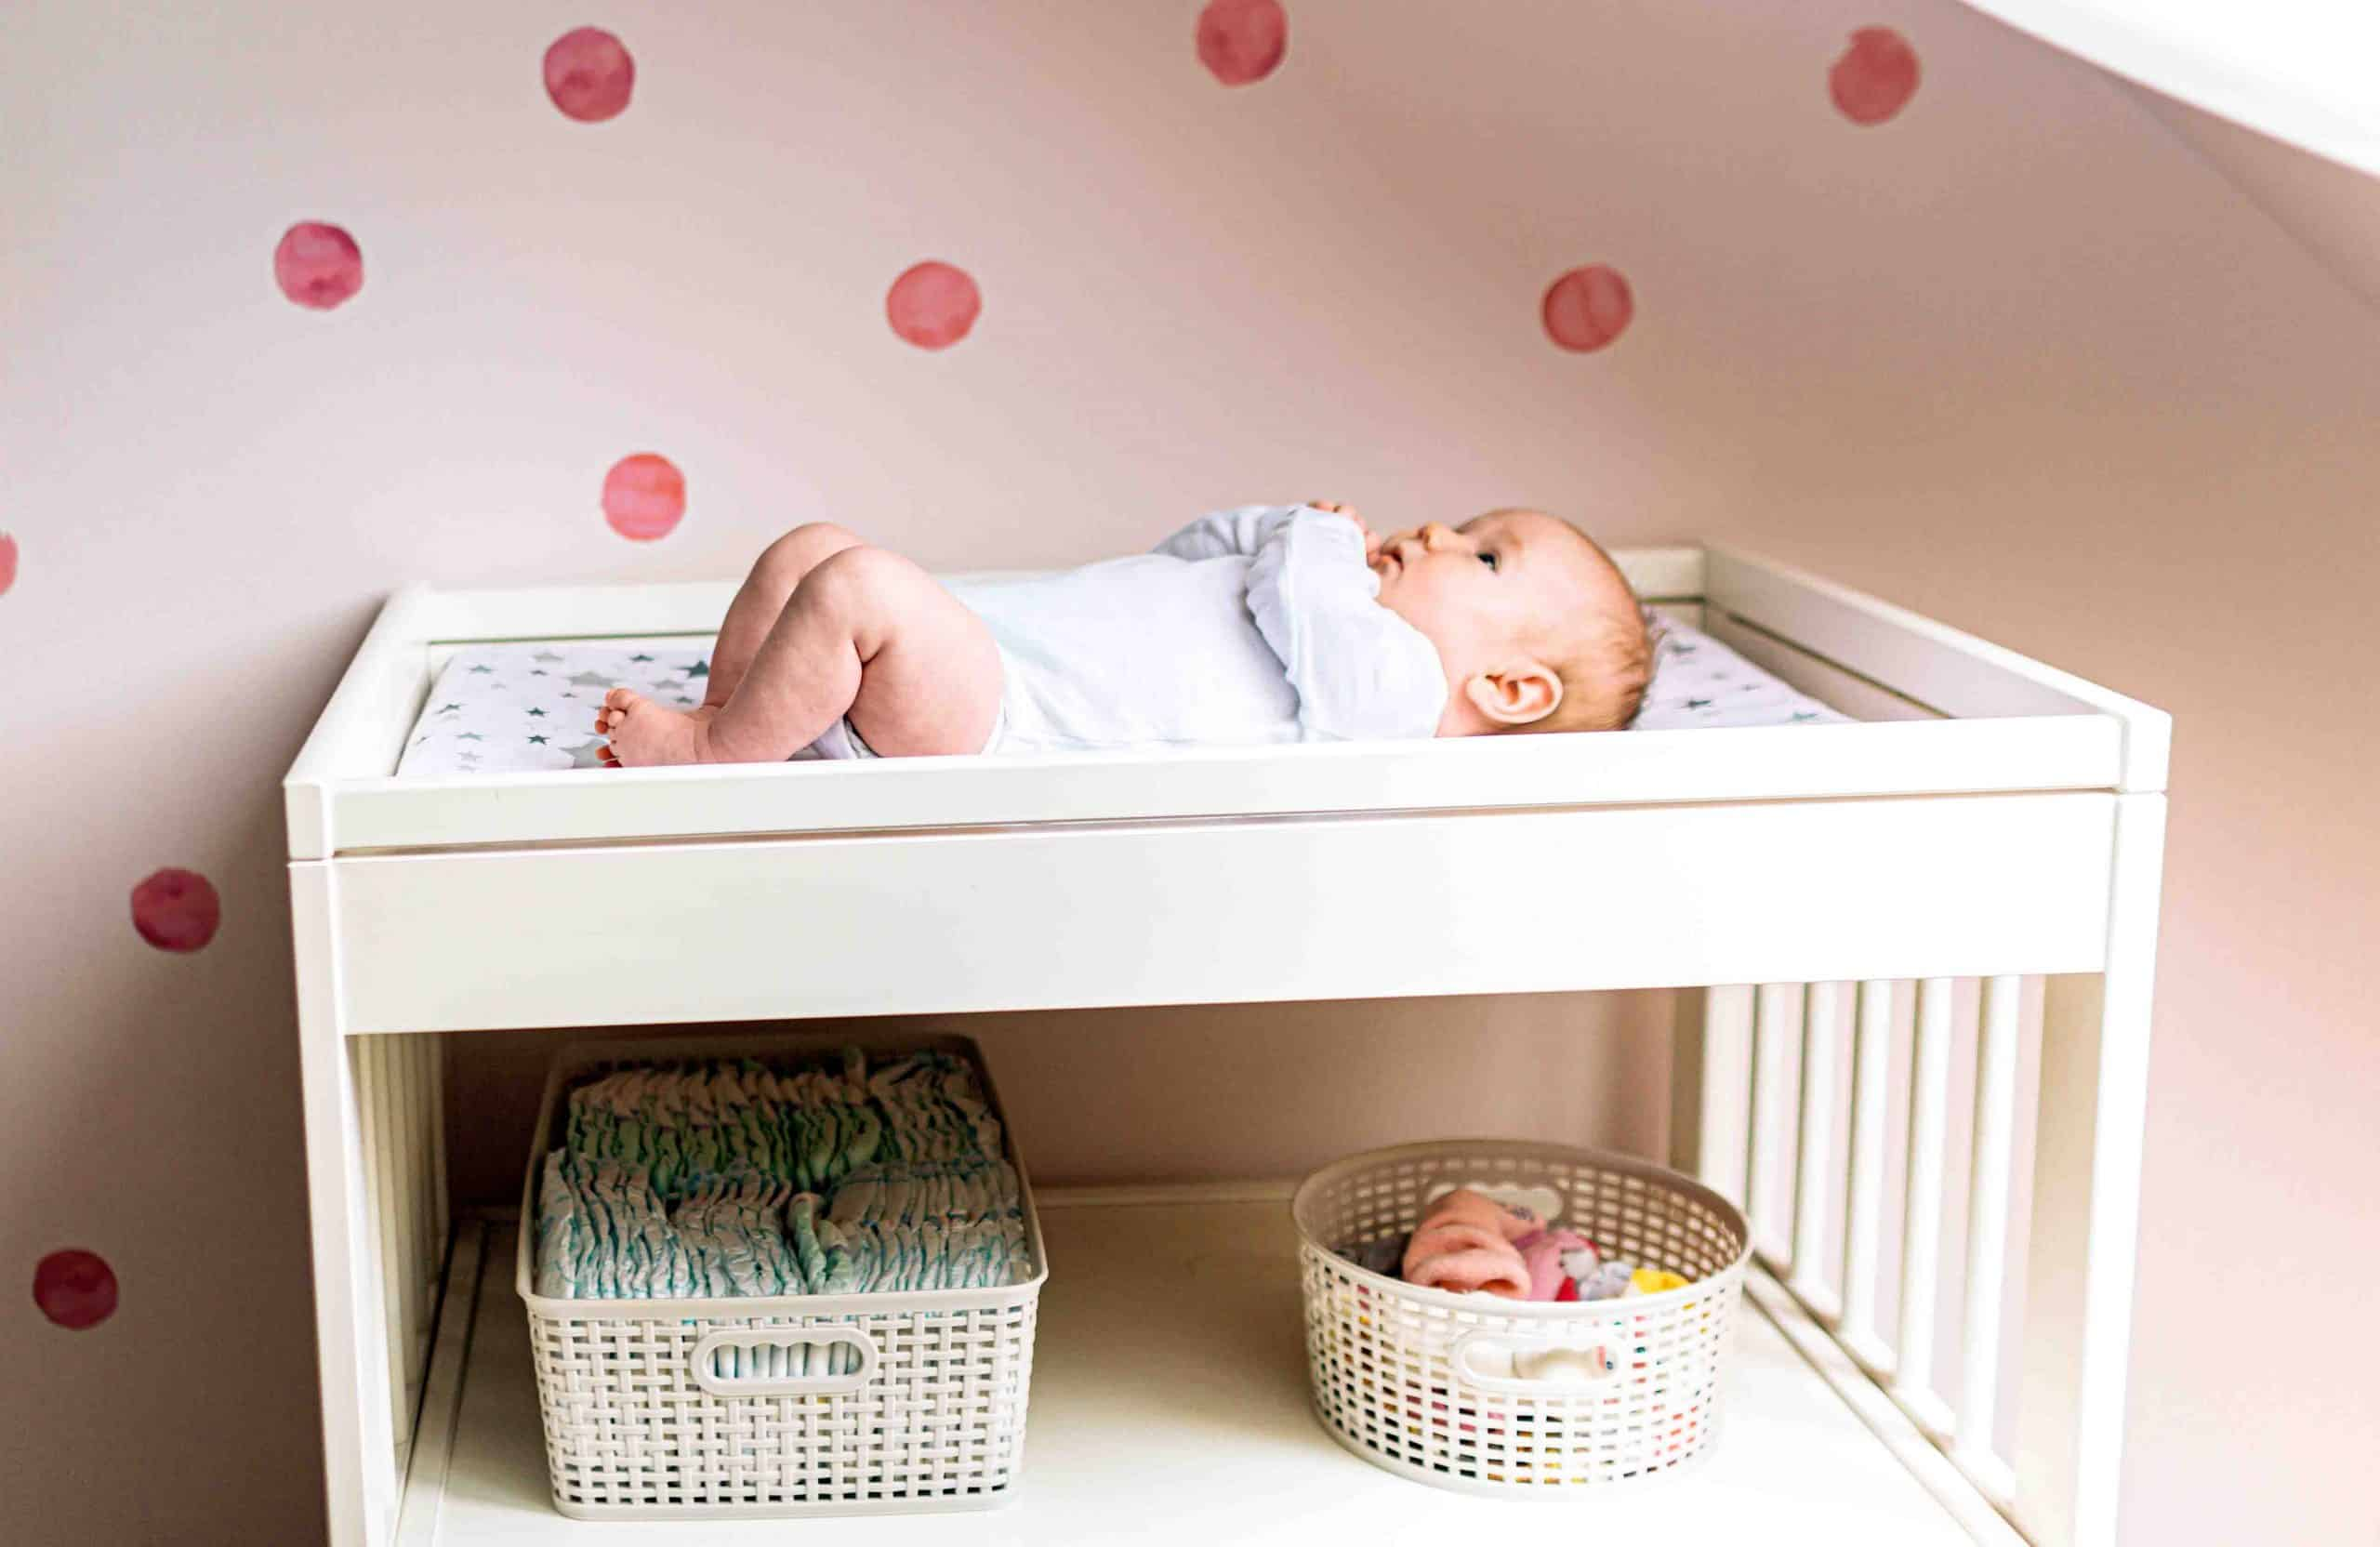 5 Things Every Good Parent Needs To know To Set Up A Nursery